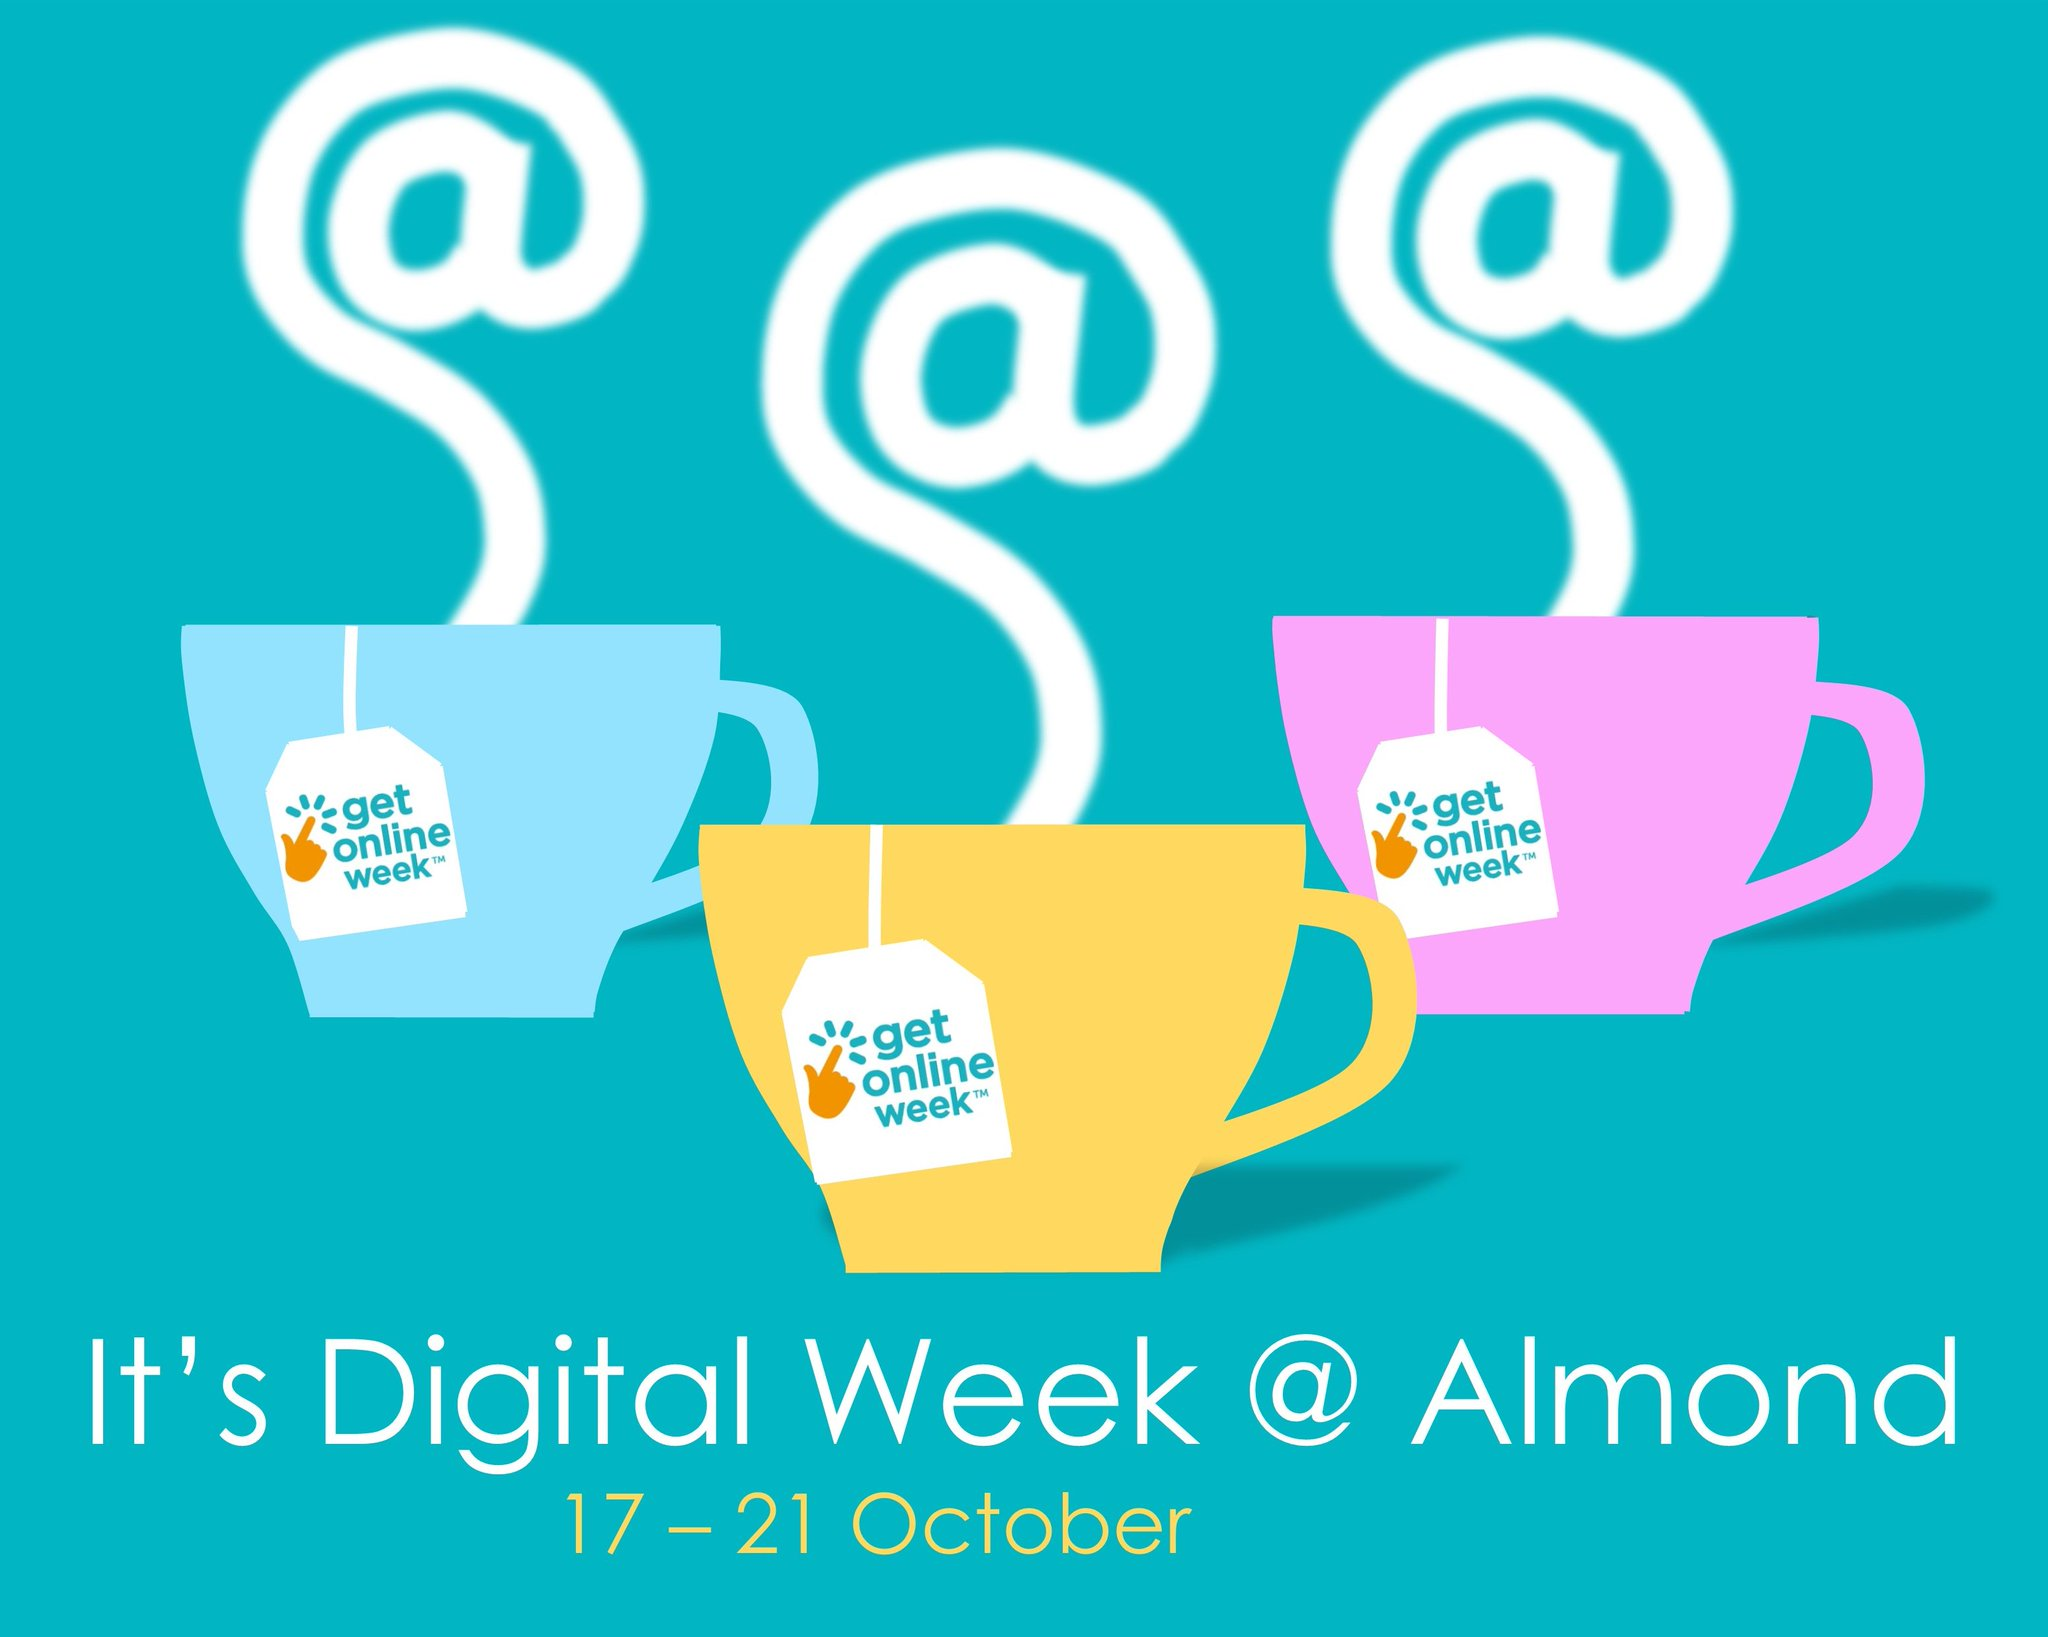 It's Get Online Week and #Digital Week @ Almond has officially begun! https://t.co/ThHIRBOGAp  #GOLW16 #digitalinclusion #ukhousing https://t.co/4QnBq5GPM2